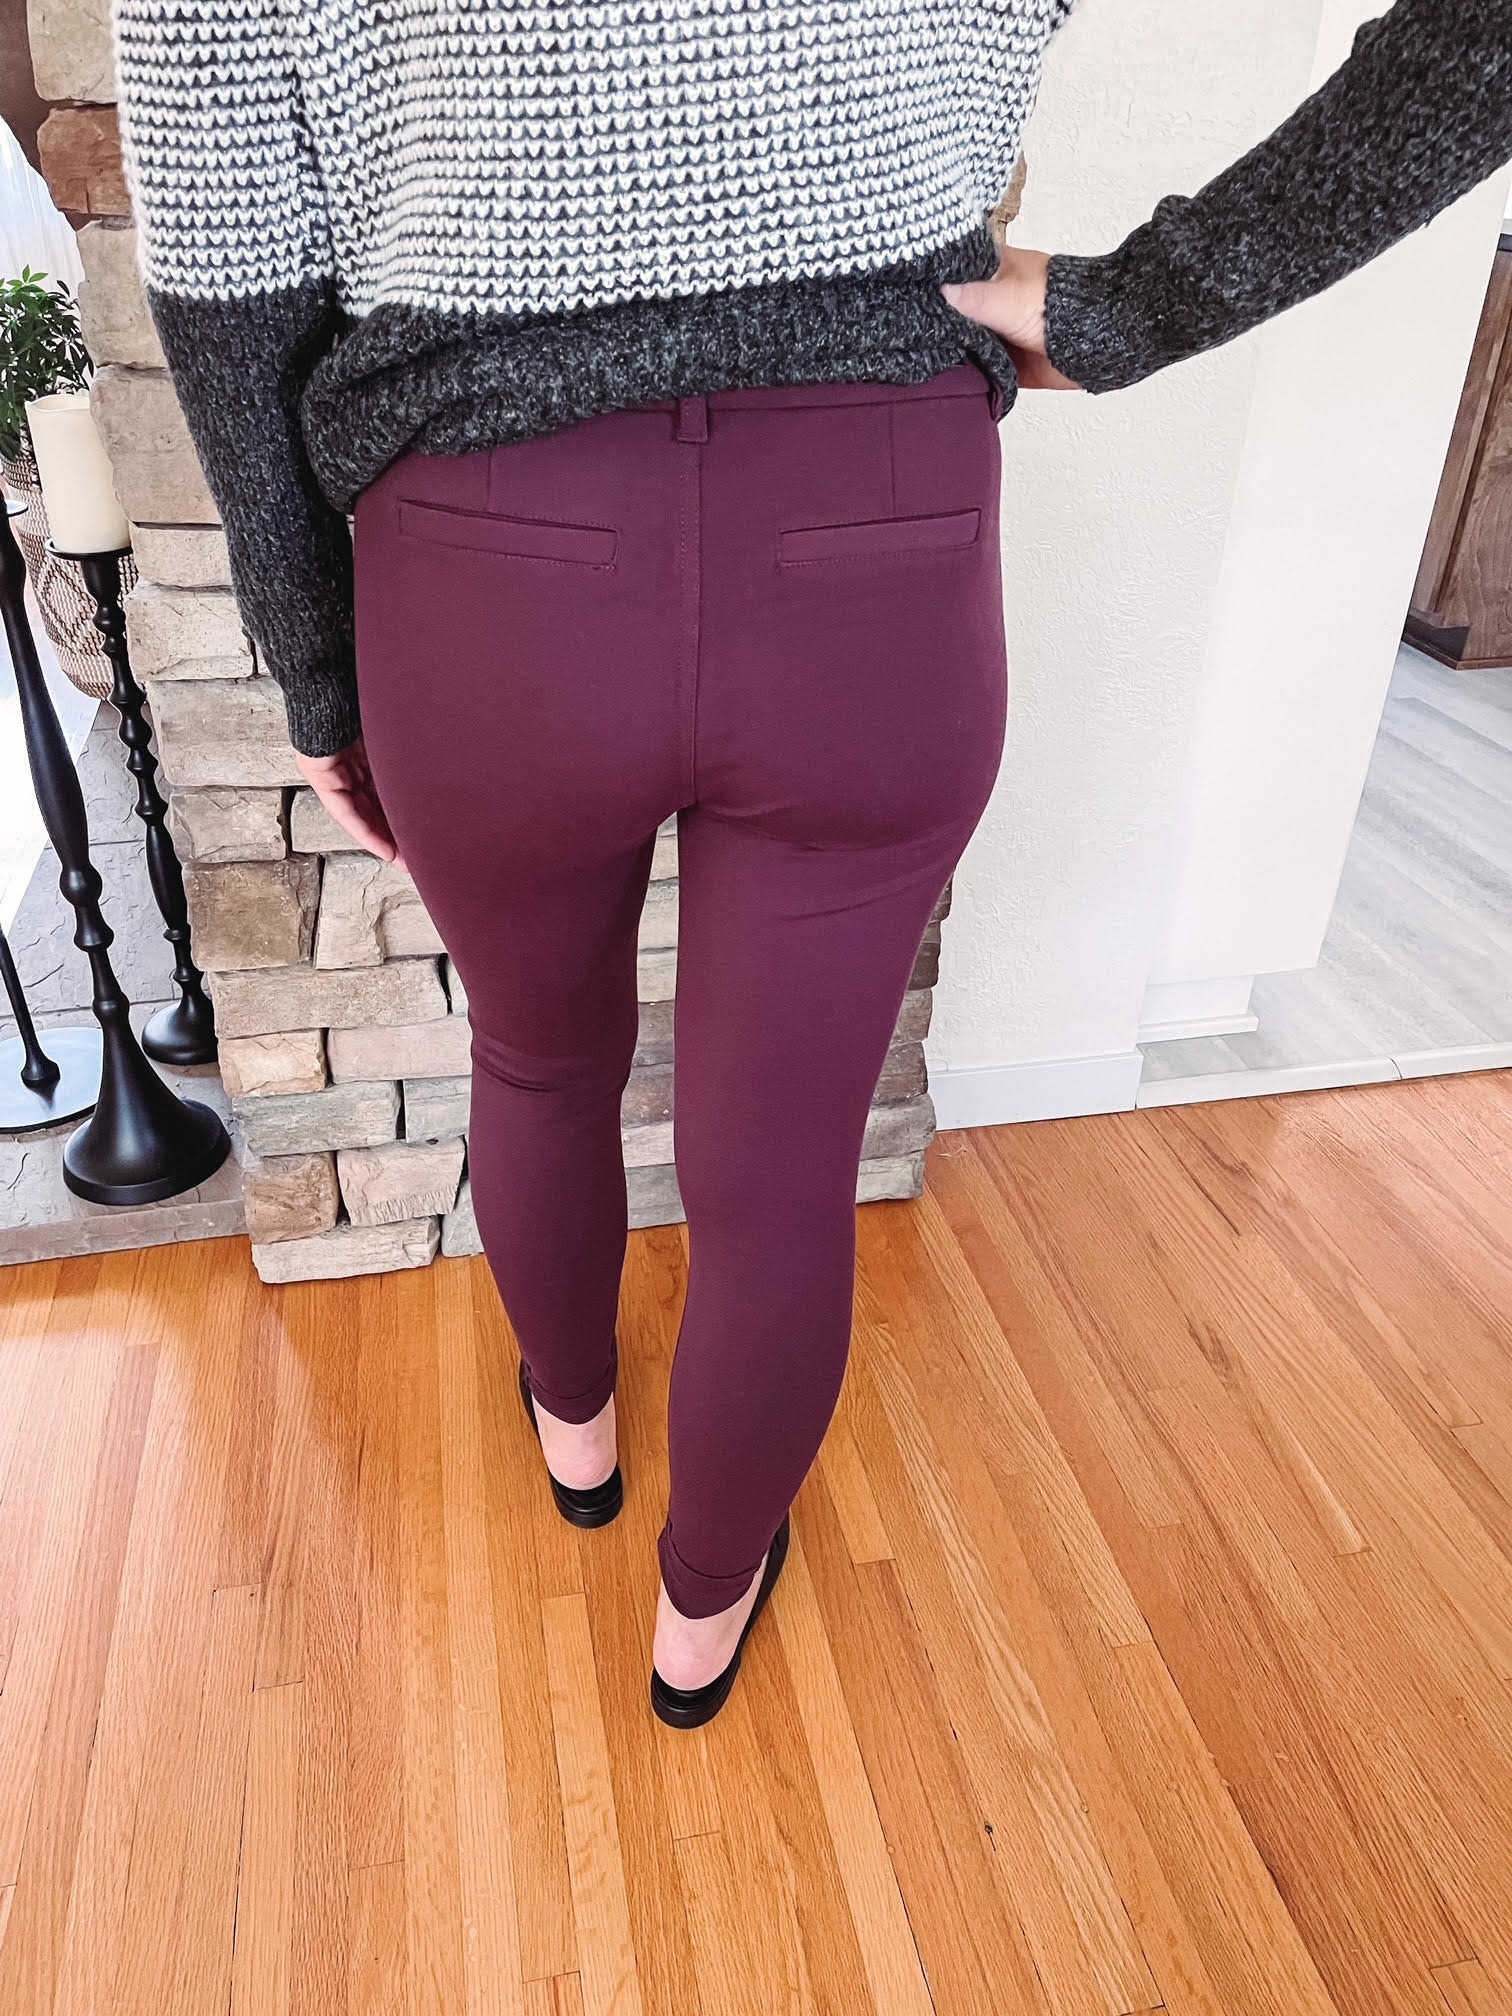 KUT from the Kloth Mia Ankle Skinny in Port Wine Size 4